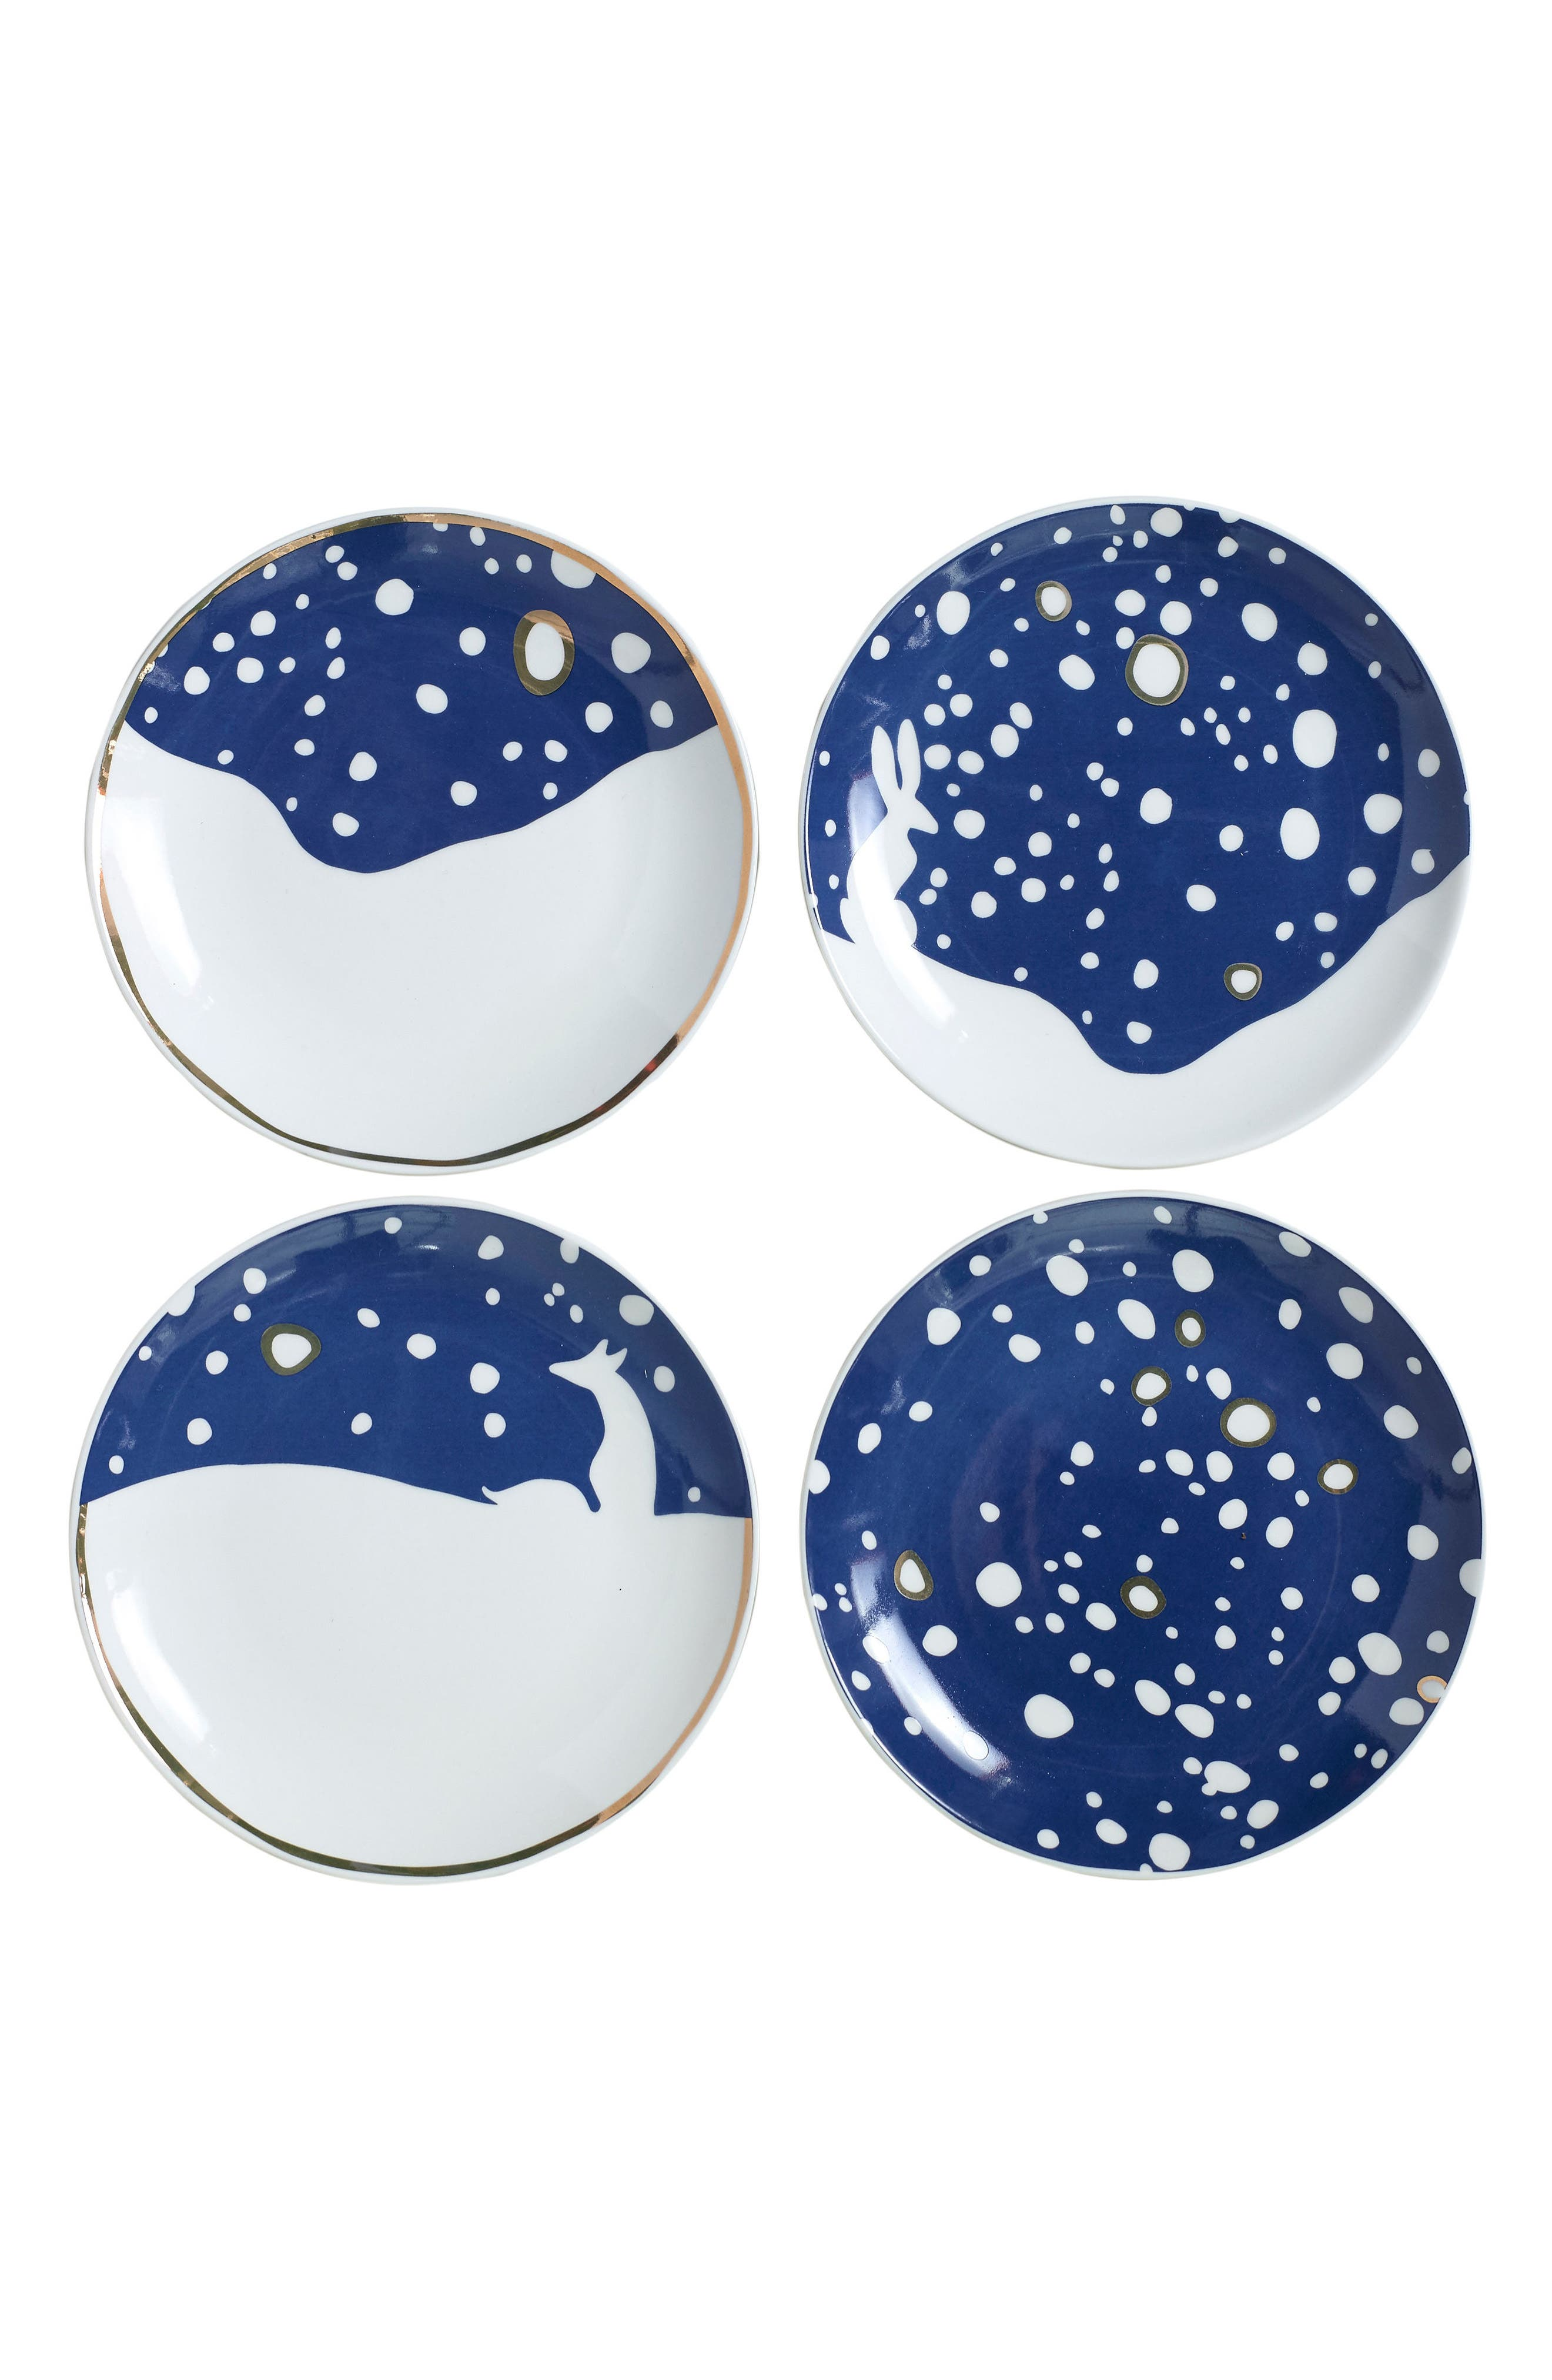 Eric & Eloise Snowy Set of 4 Assorted Plates,                         Main,                         color, Blue